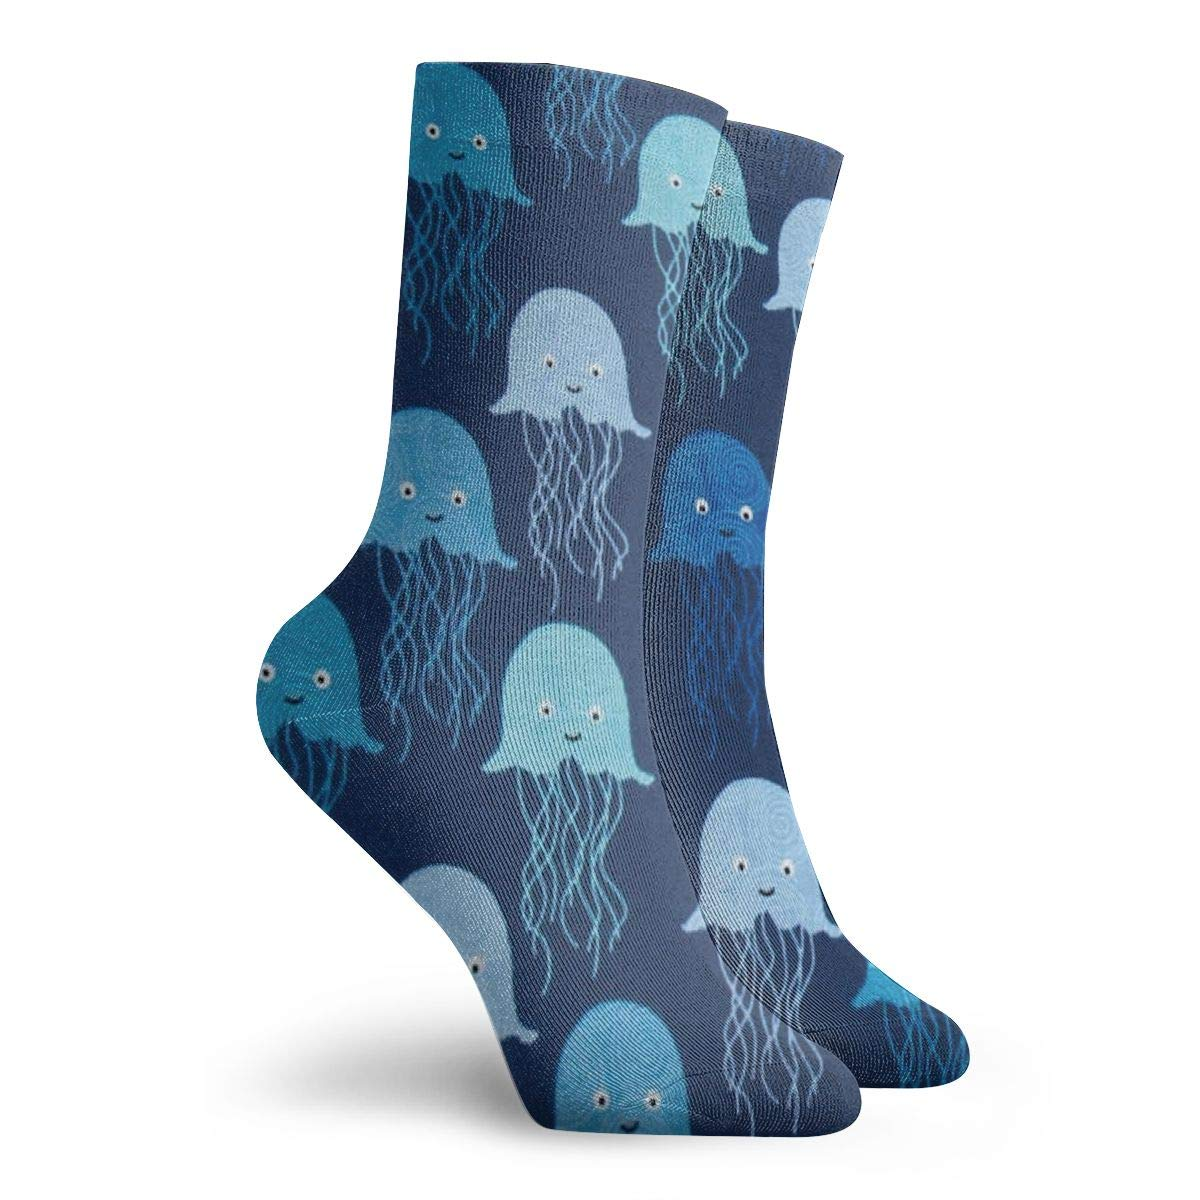 Blue Jellyfish Unisex Funny Casual Crew Socks Athletic Socks For Boys Girls Kids Teenagers